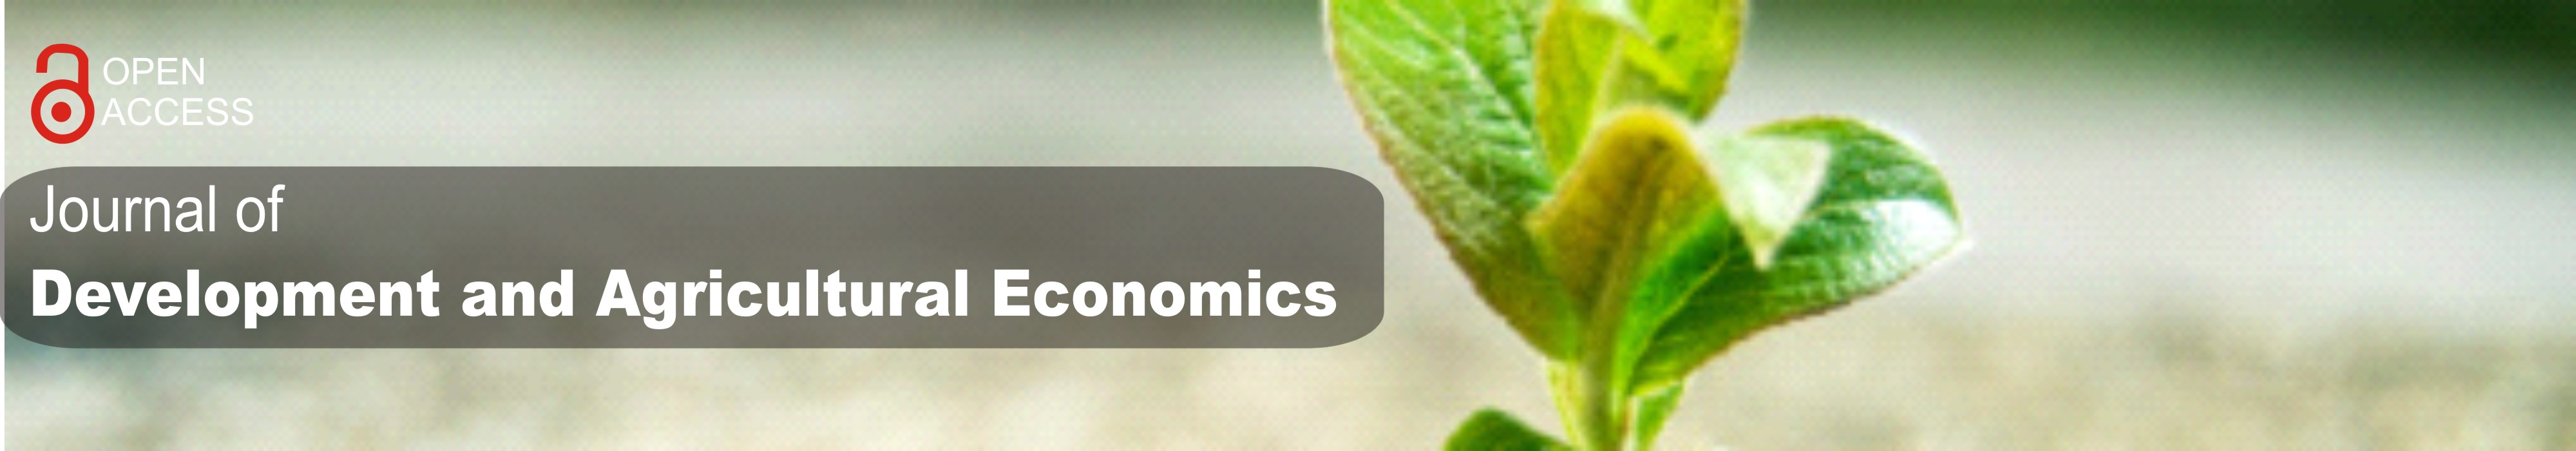 Journal of Development and Agricultural Economics